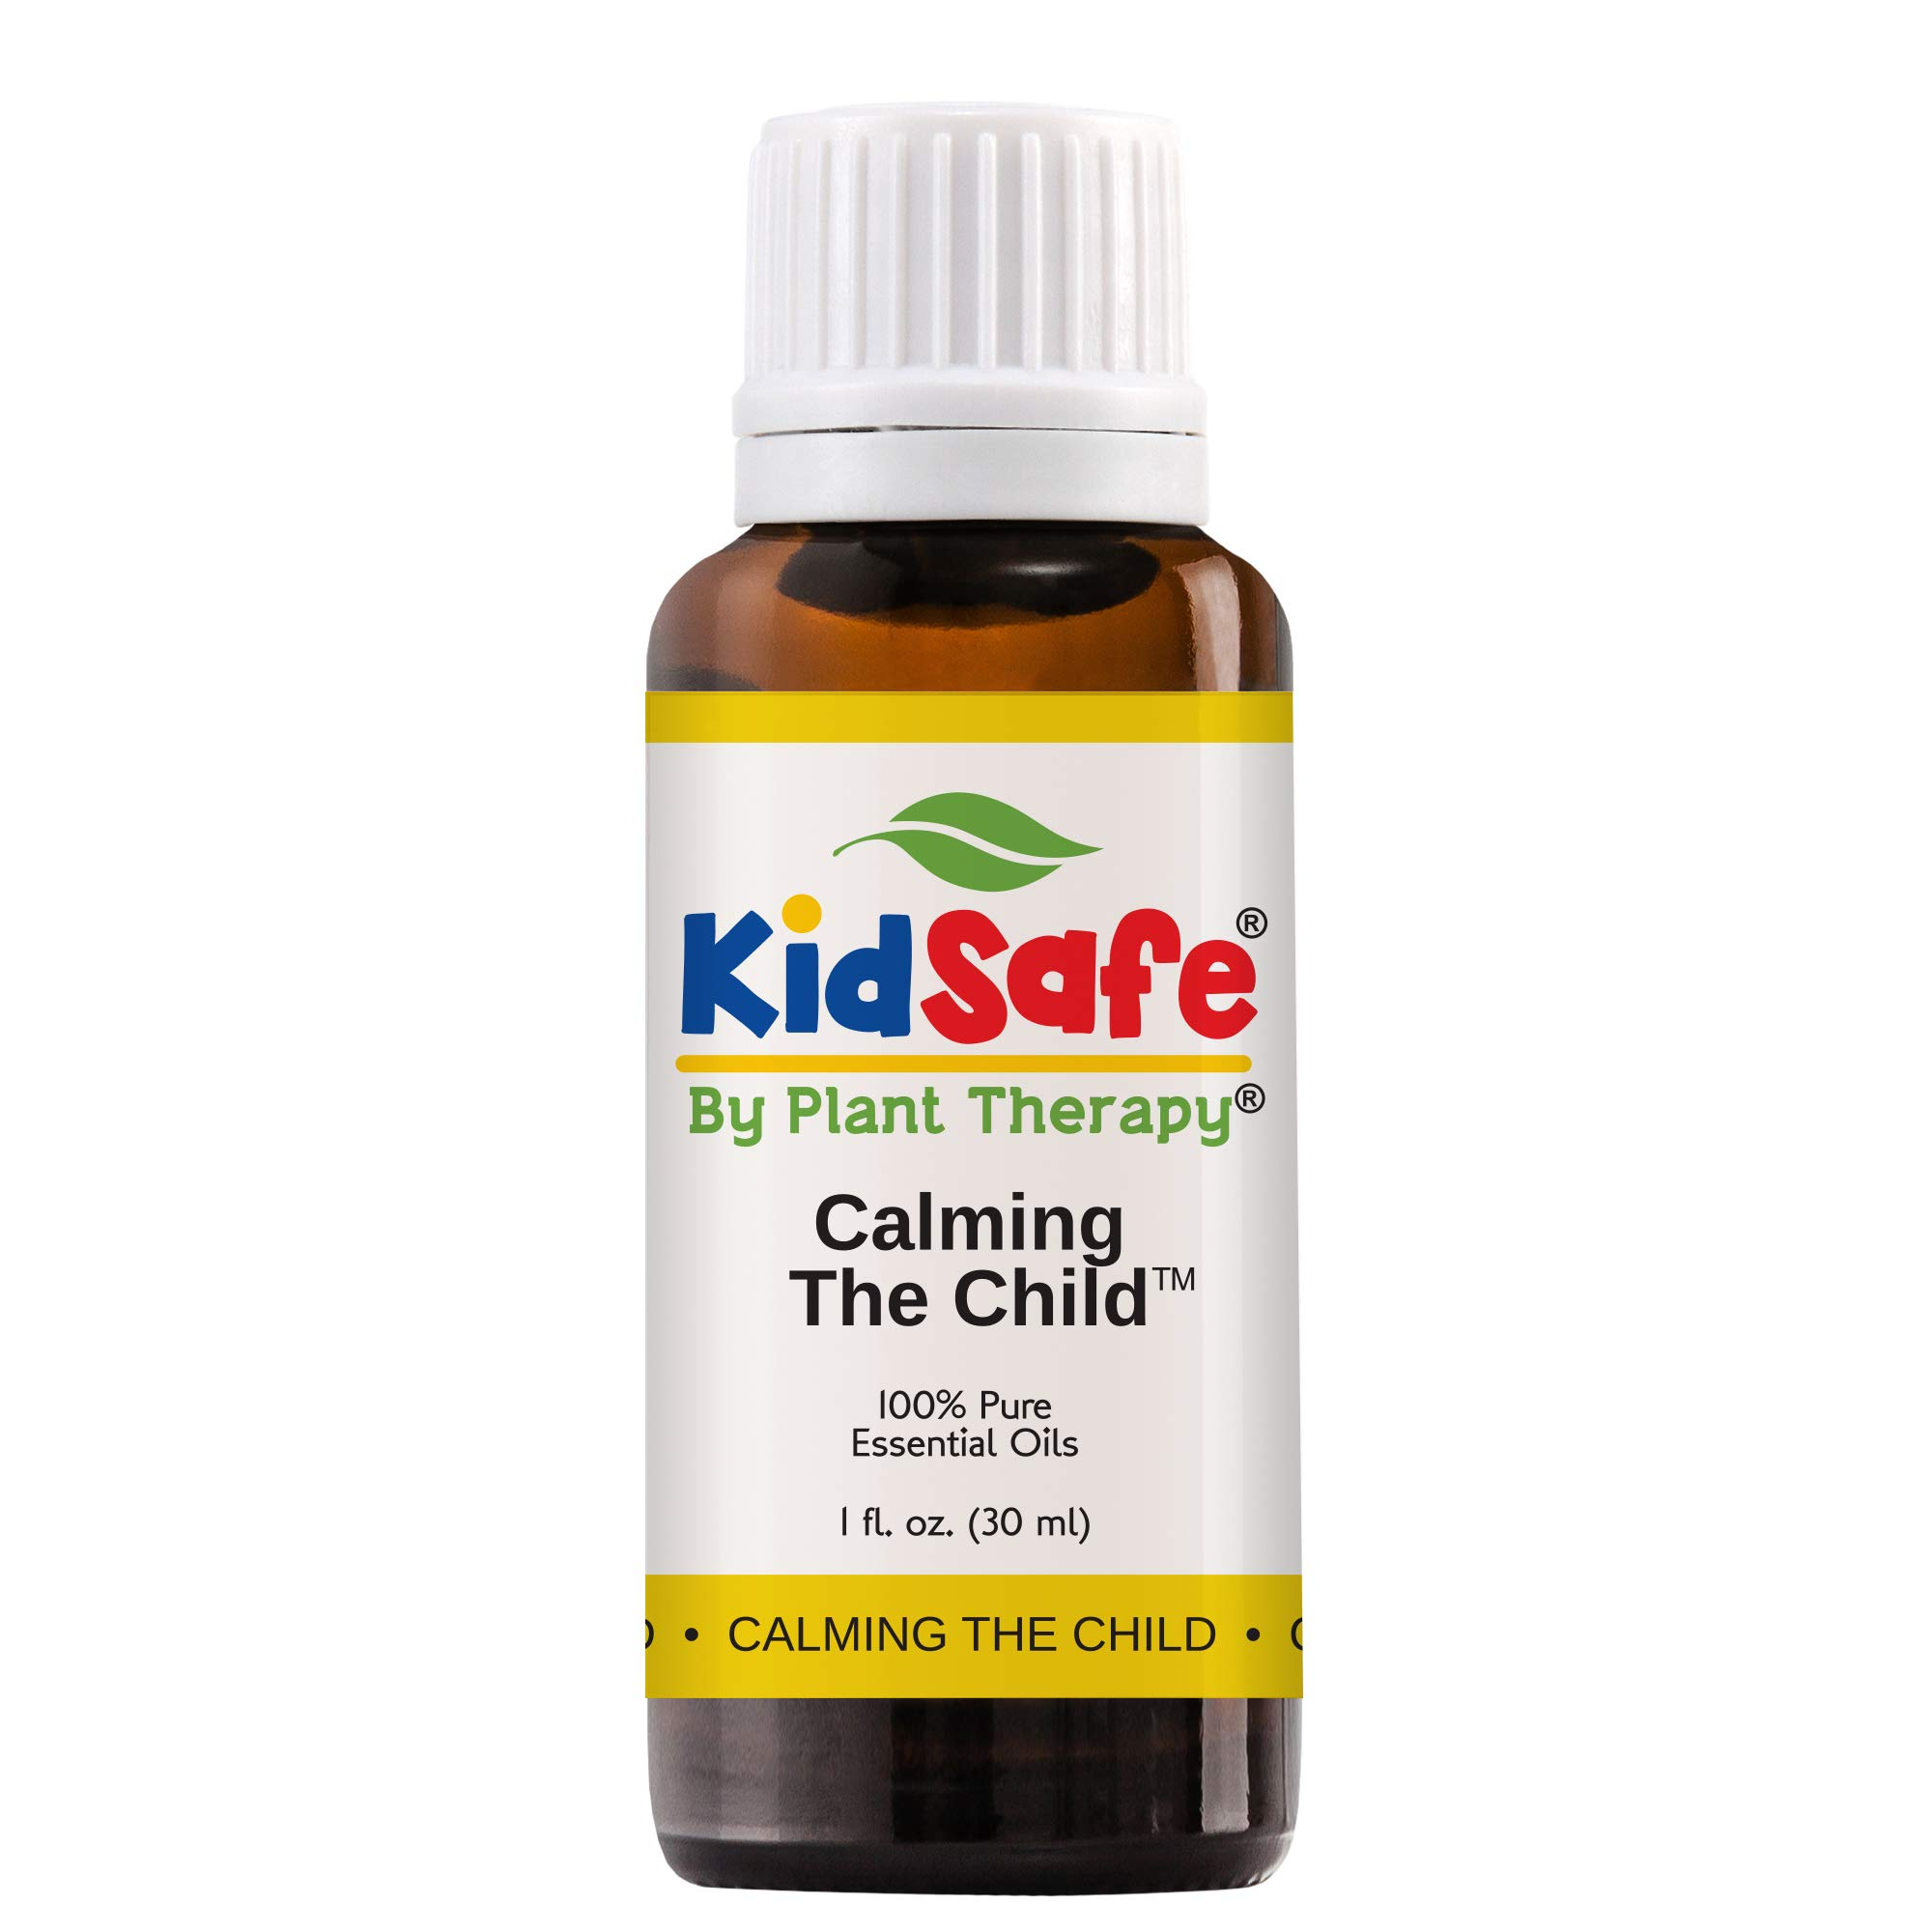 Plant Therapy Essential Oils Calming the Child Synergy - Relaxing and Soothing Blend 100% Pure, KidSafe, Undiluted, Natural Aromatherapy, Therapeutic Grade 30 mL (1oz)